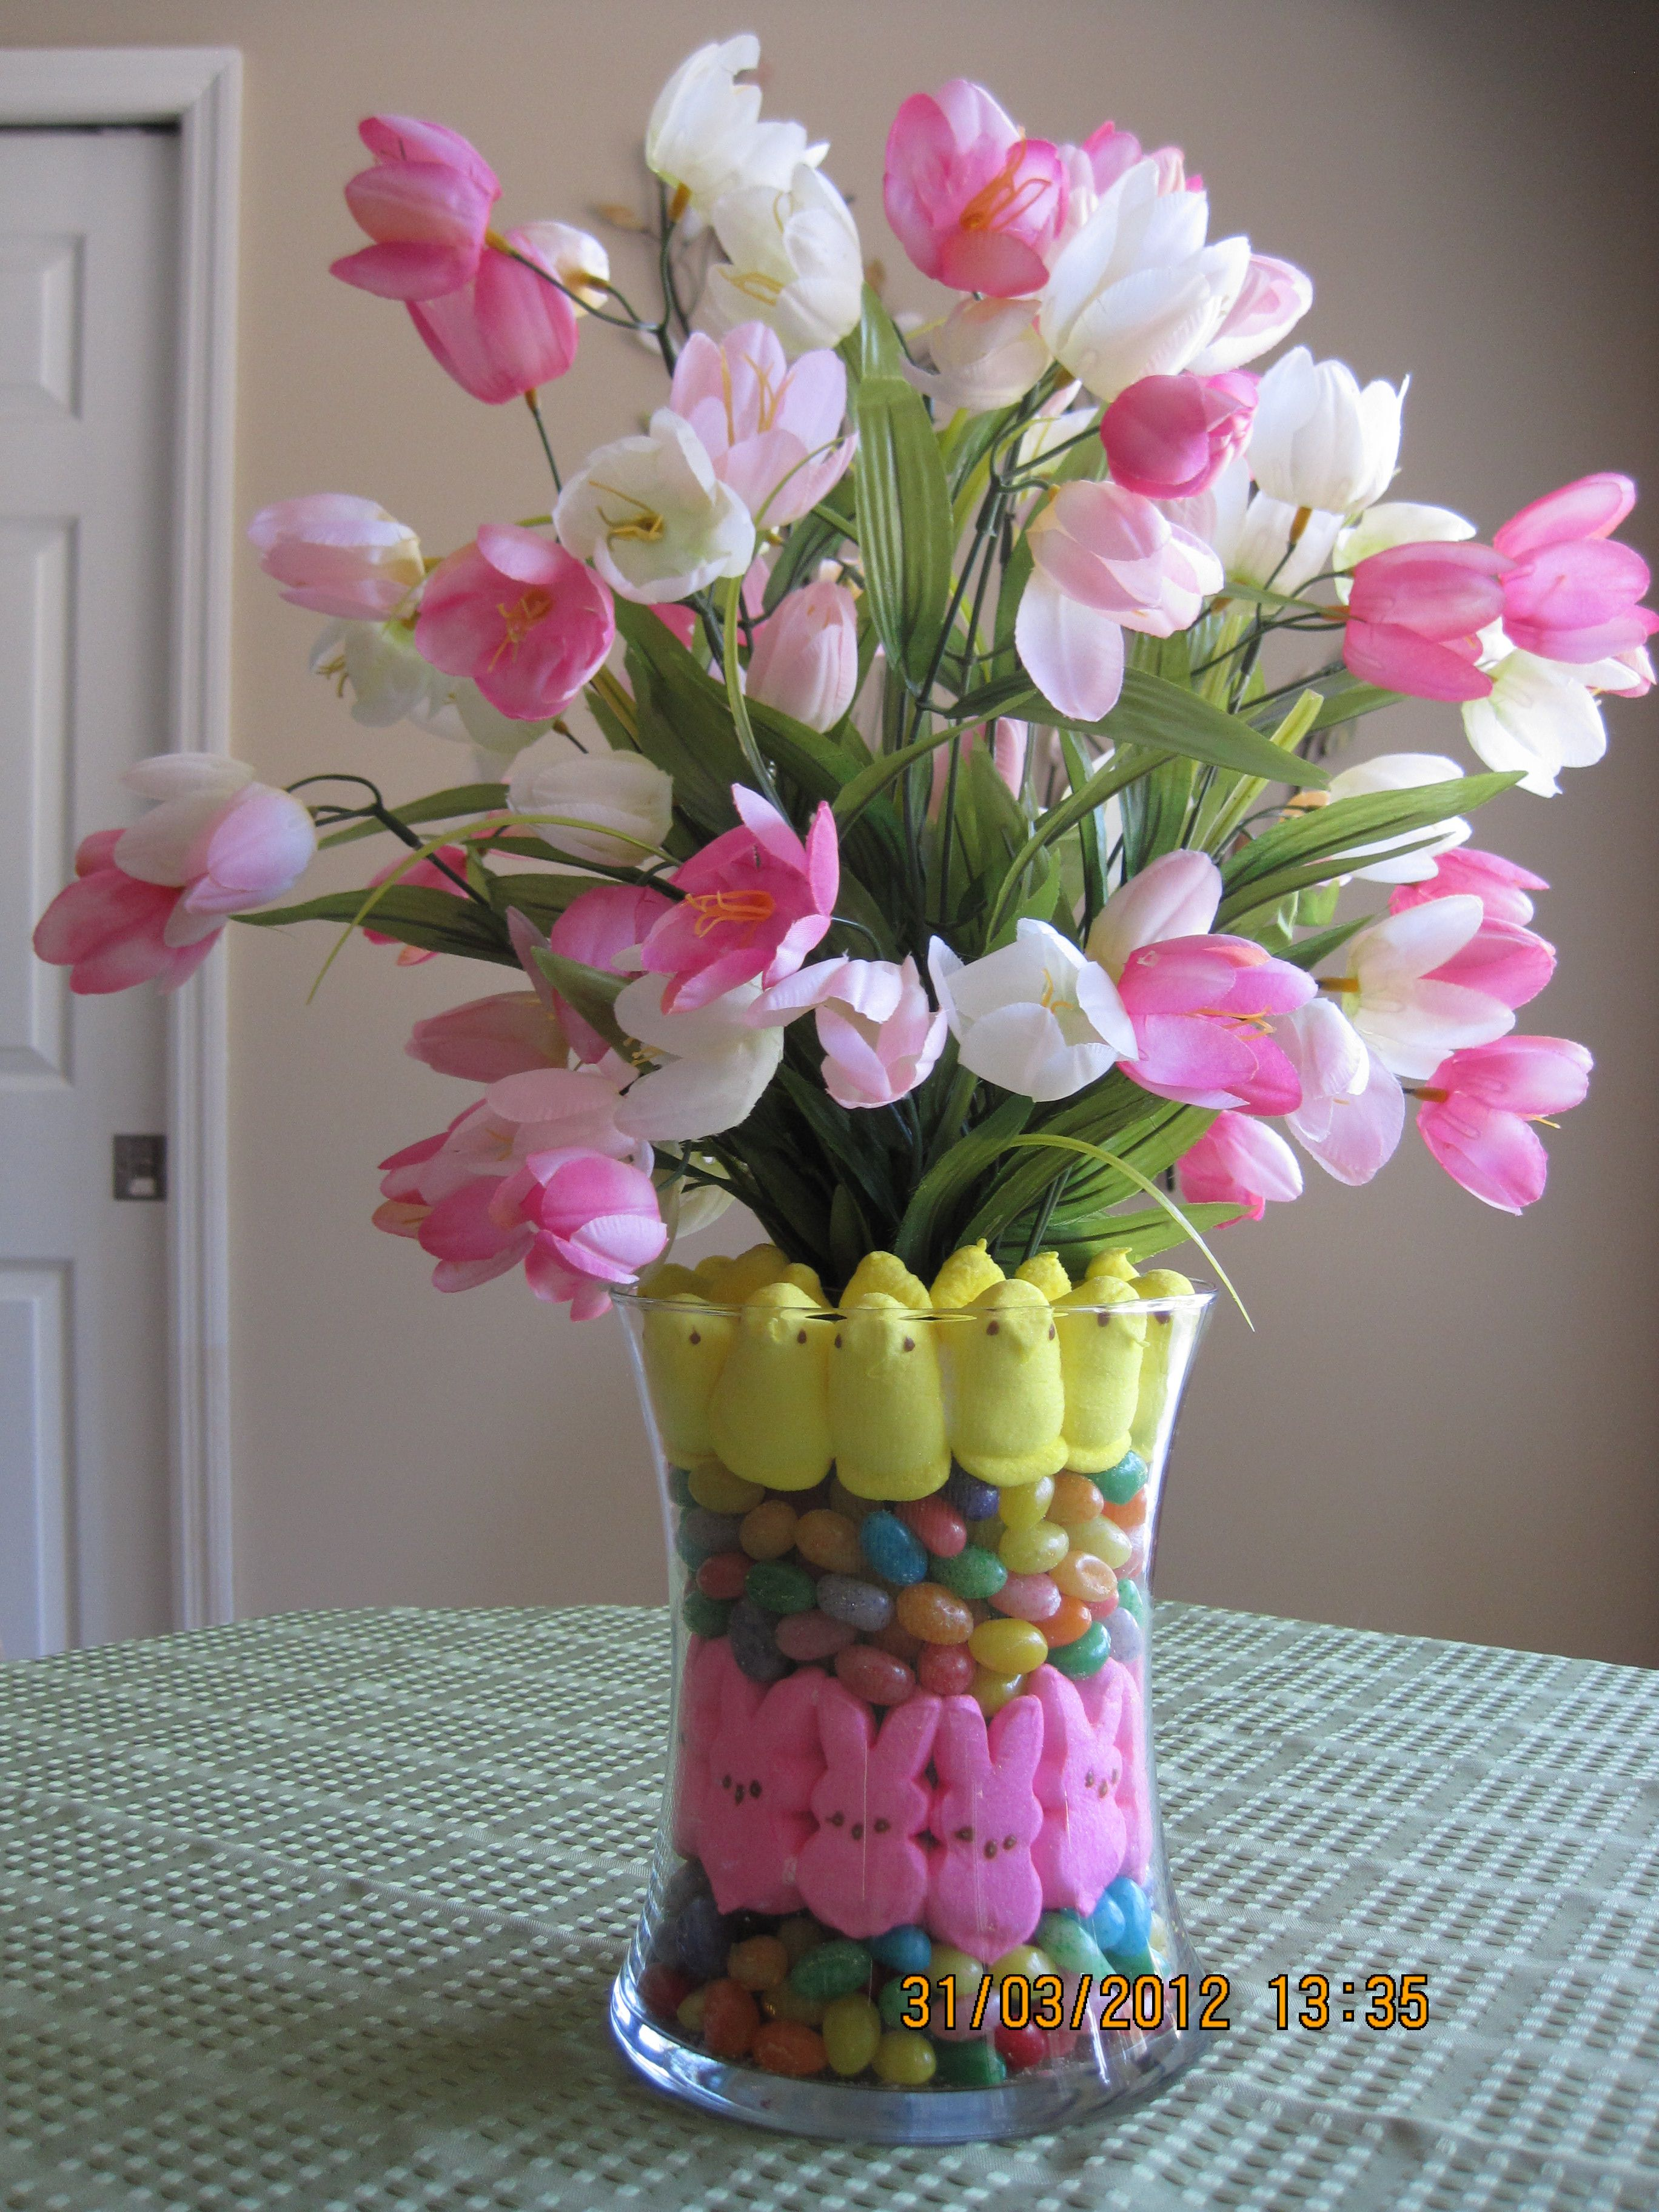 Easter Centerpiece ~ simply place a vase within a vase, fill with candy layers, add flowers and you have an easy, fun arrangement.. Easter ideas